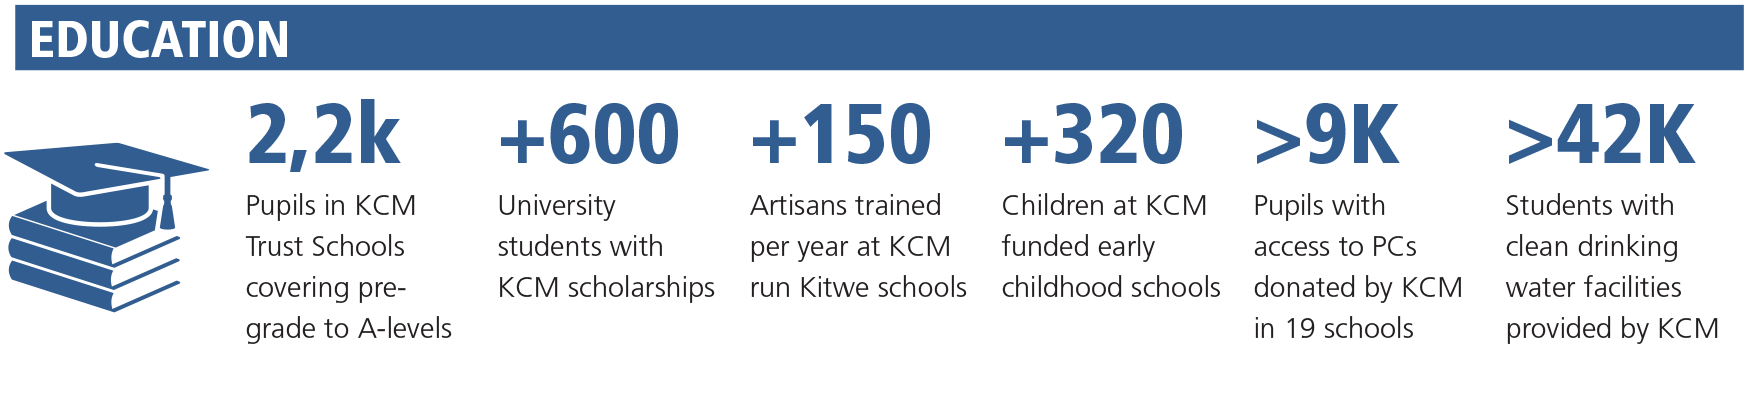 KCM program - Education [diagram]